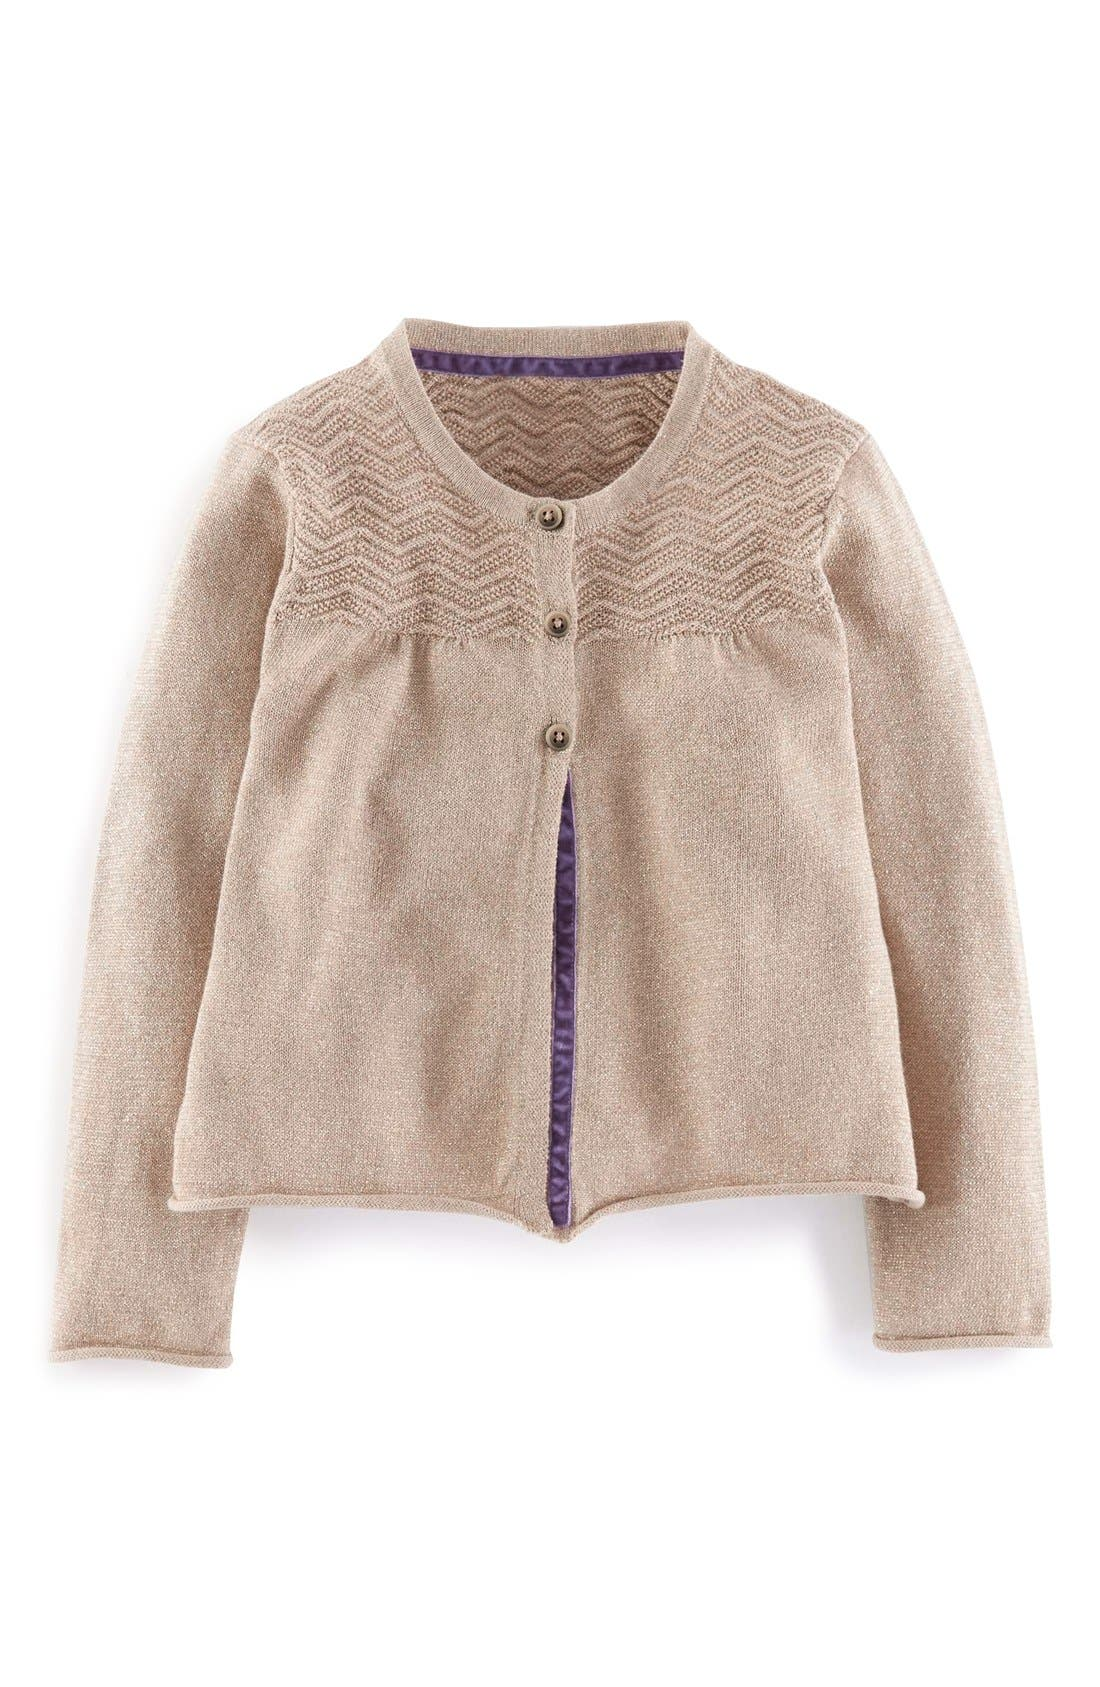 Main Image - Mini Boden Cotton & Cashmere Cardigan (Toddler, Little Girls & Big Girls)